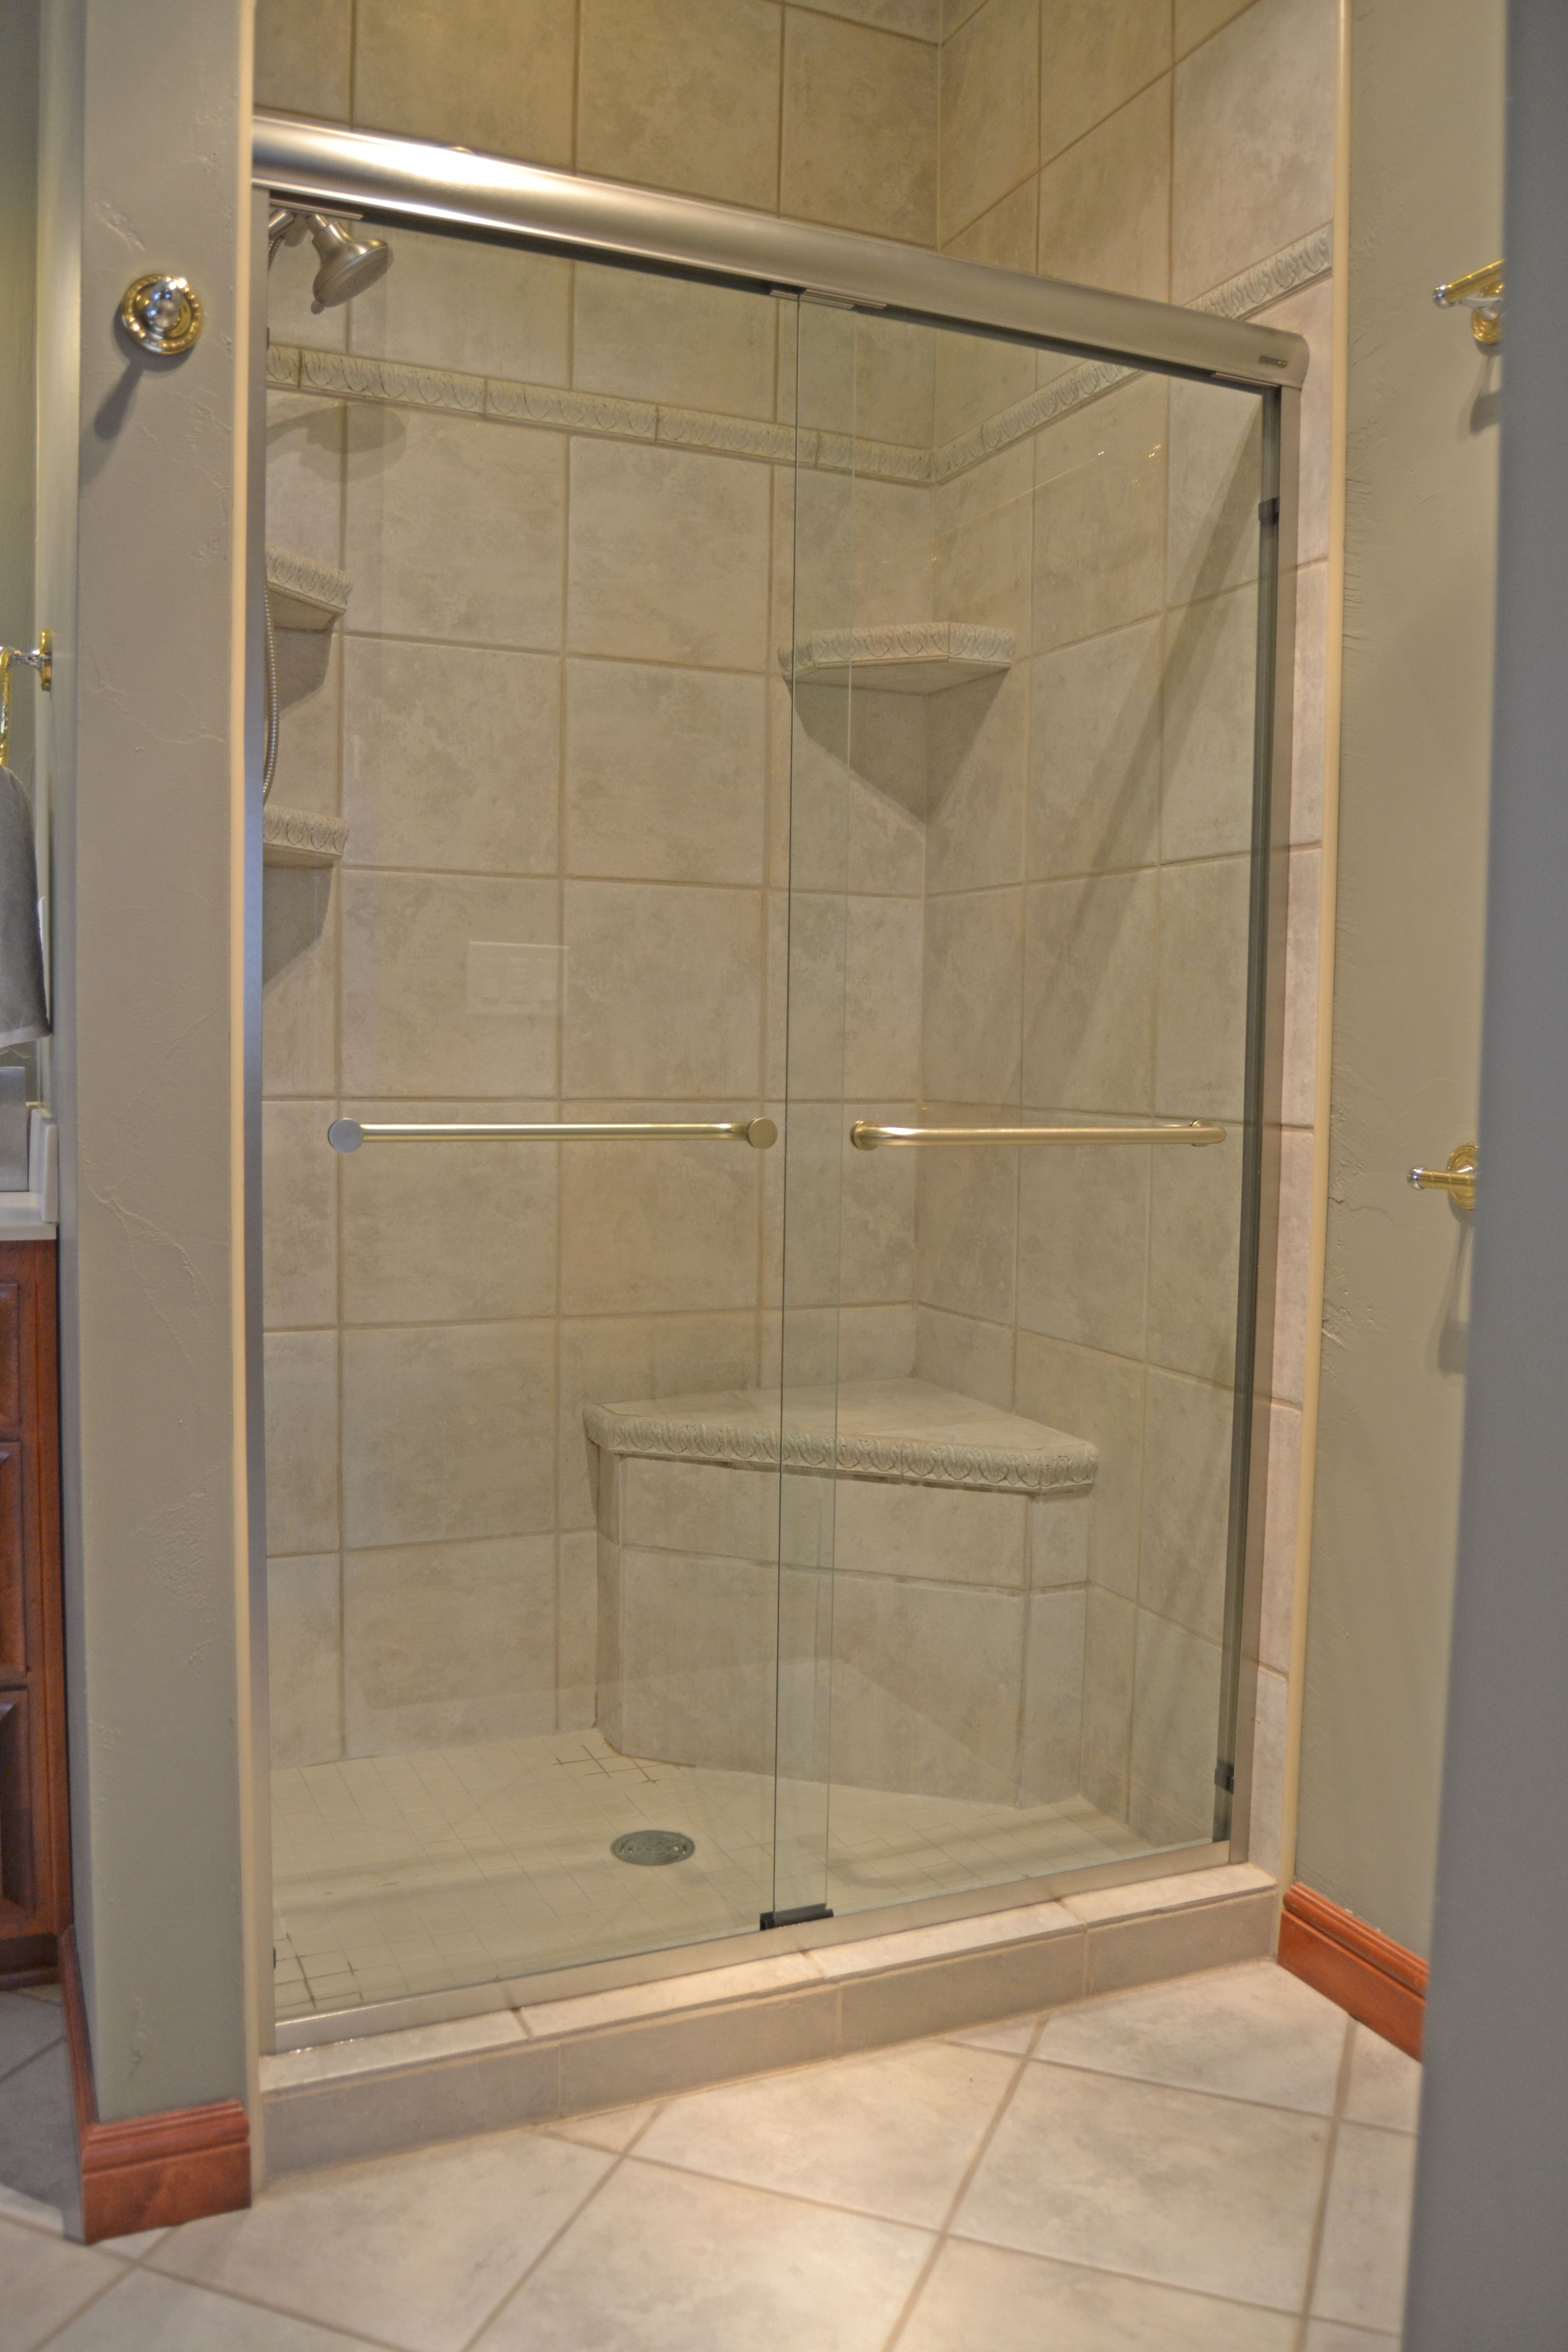 Tri City Glass \u0026 Door specializes in commercial glass projects and automotive glass repair and are your residential glass and door professionals. & Basco frameless sliding shower doors on a tiled opening. | Shower ...